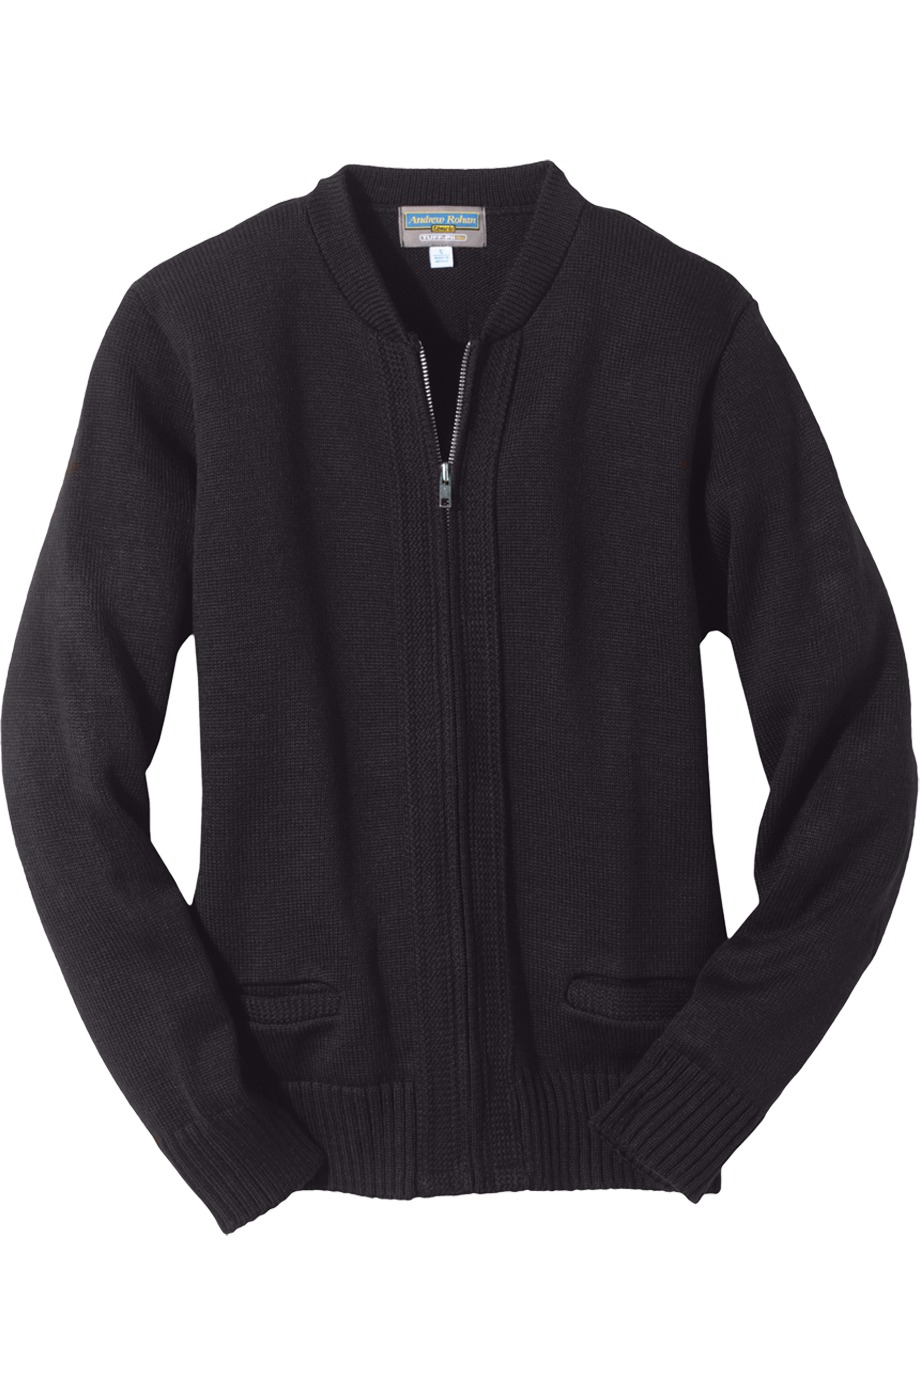 Edwards Garment 372 - Heavy Weight Zipper Cardigan